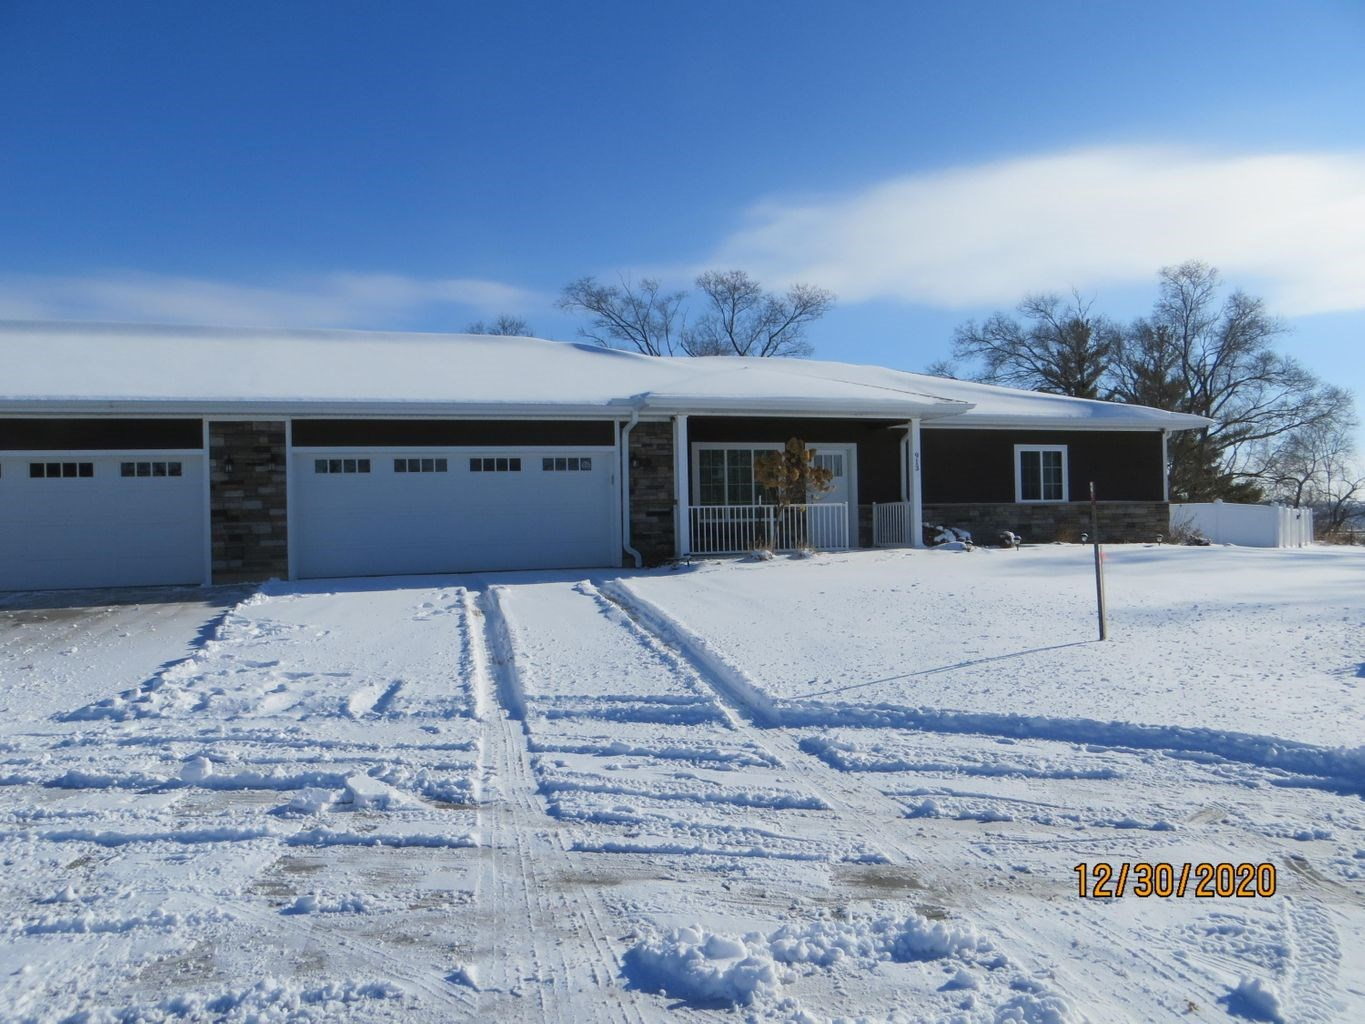 HOME FOR SALE IN MISSOURI VALLEY IA IN TOWN